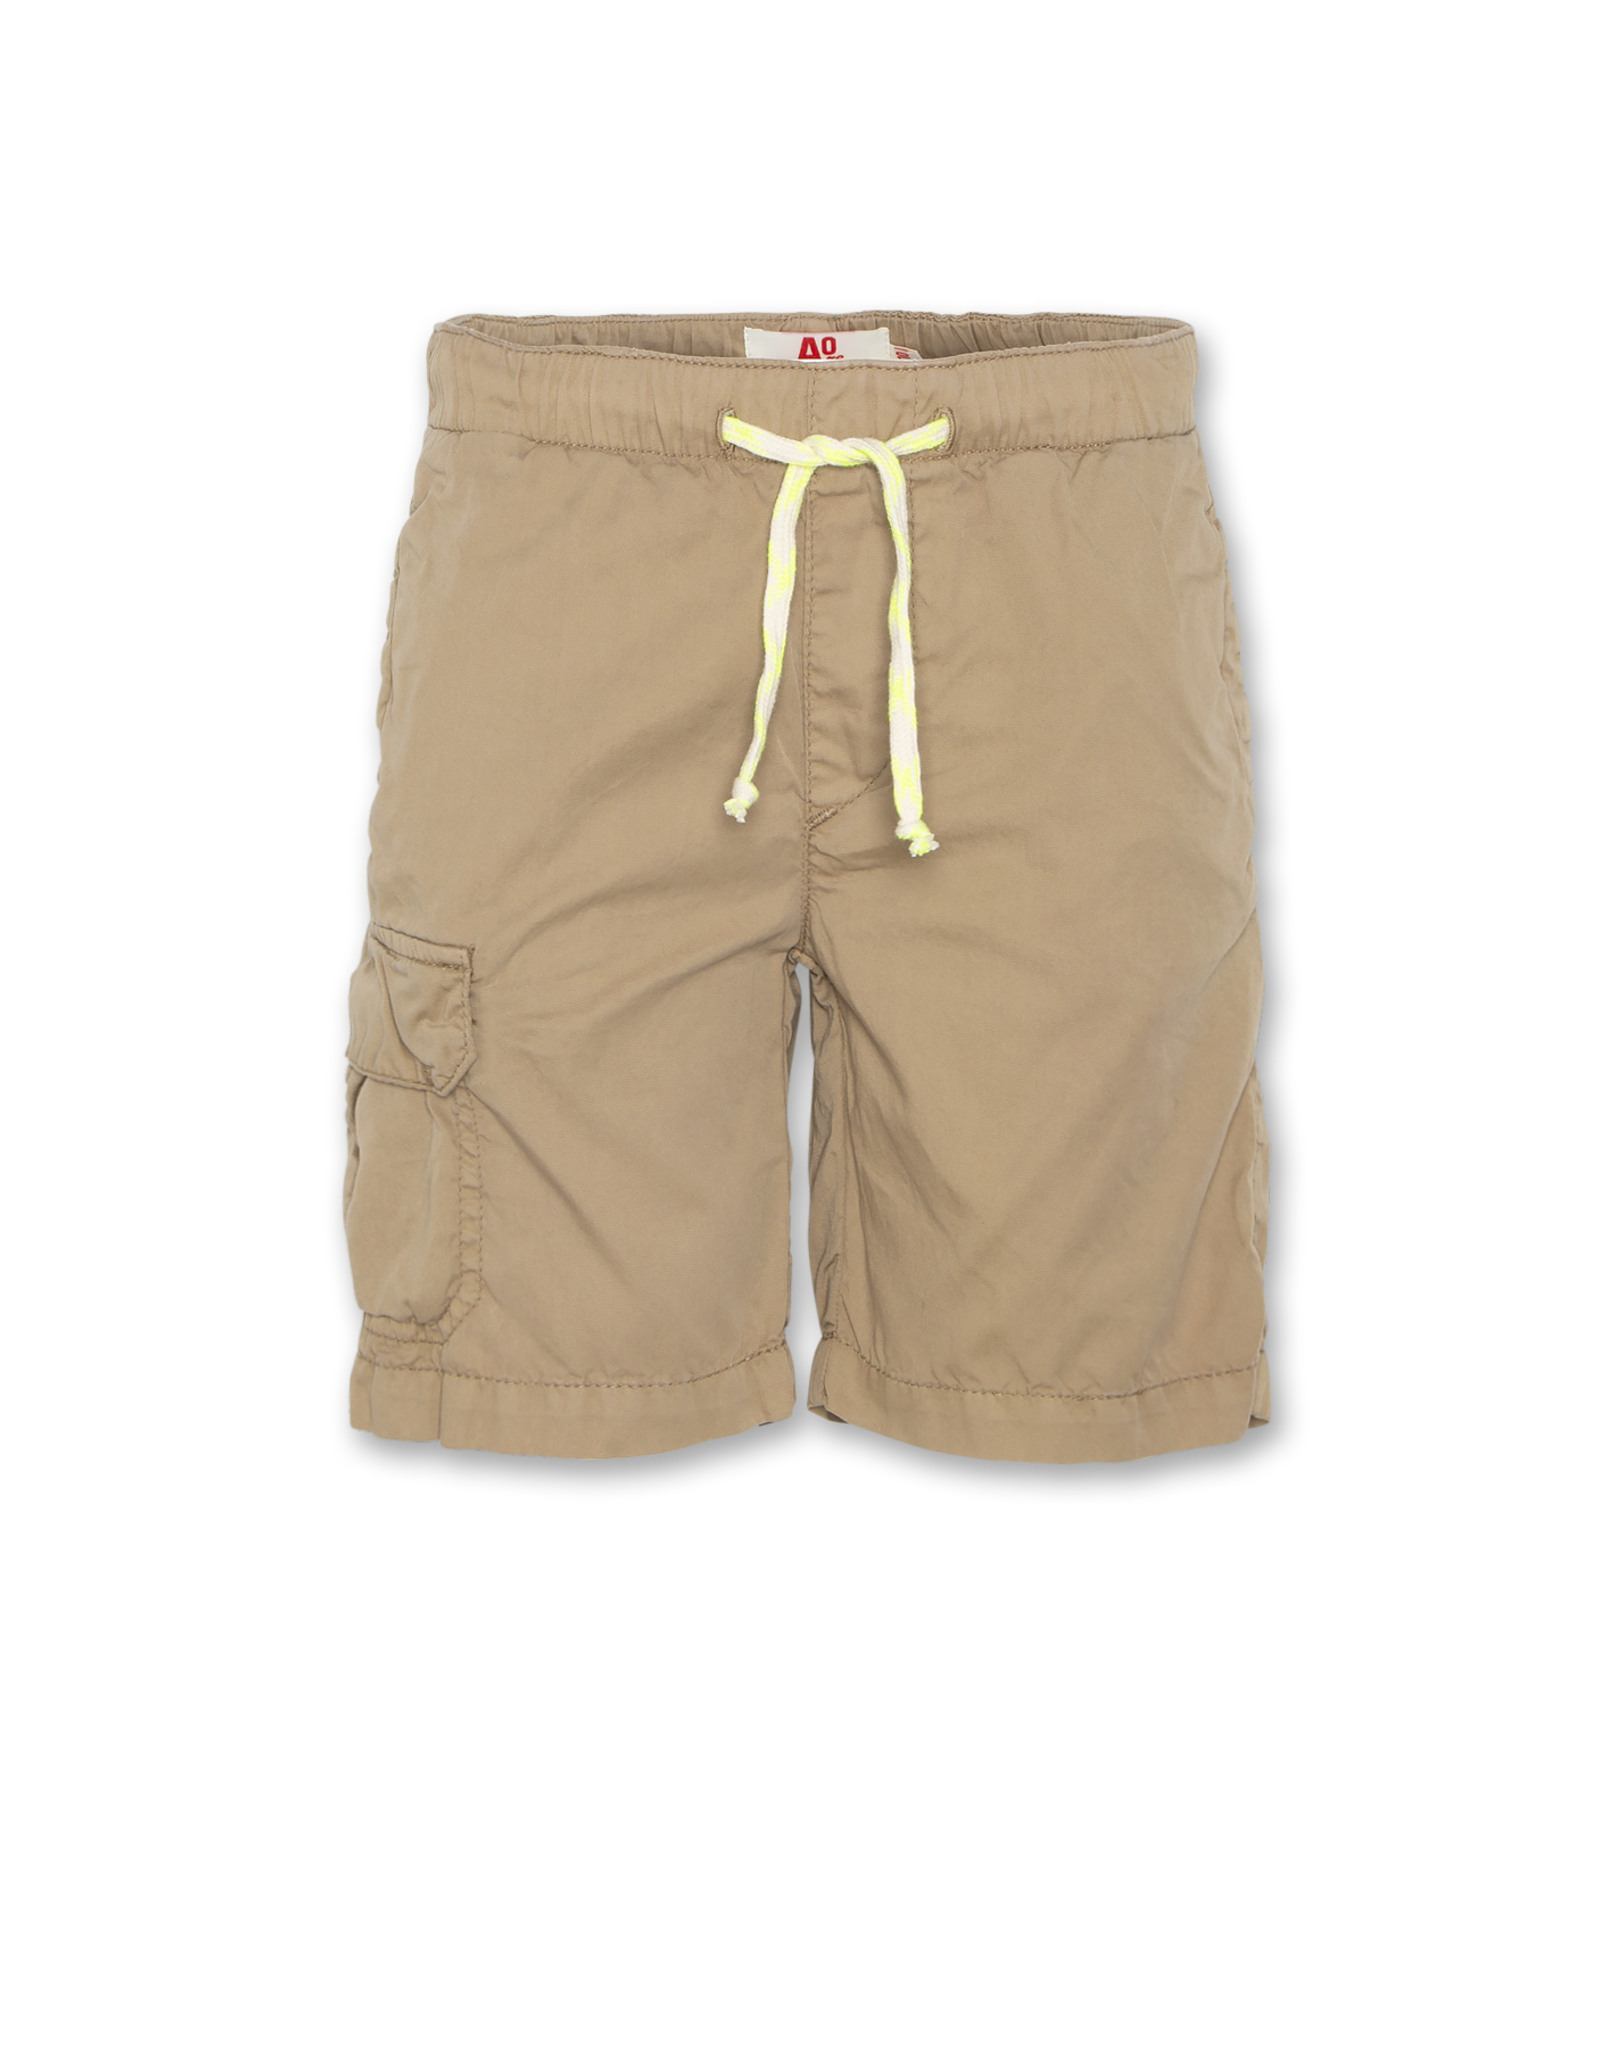 AMERICAN OUTFITTERS Ao76 Andy Shorts